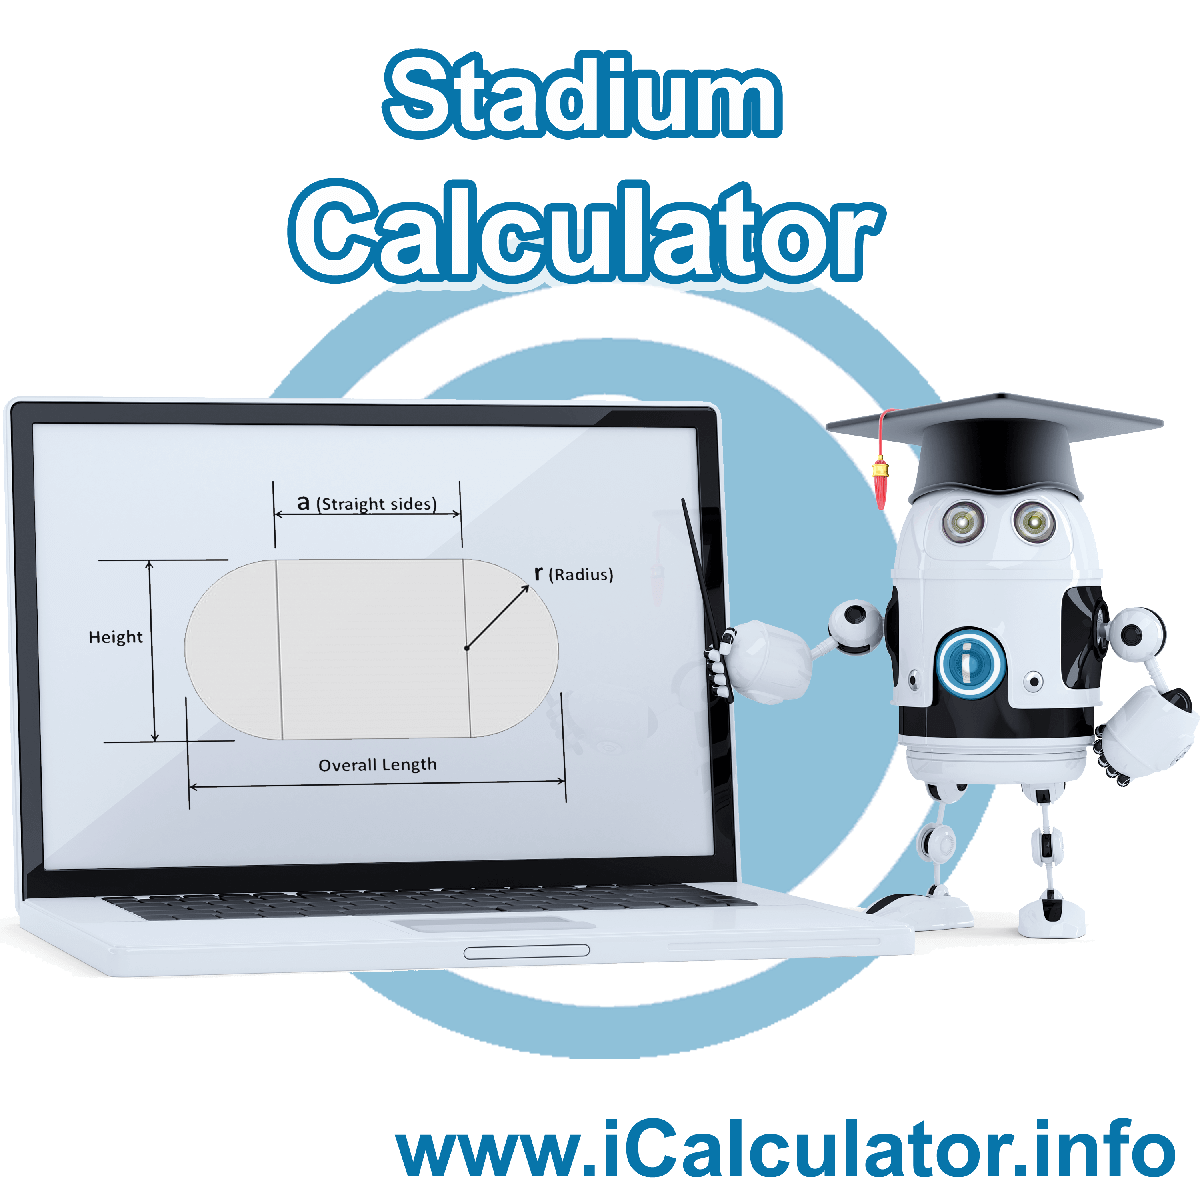 Stadium Calculator. This image shows the properties and formula for the Stadium Calculator